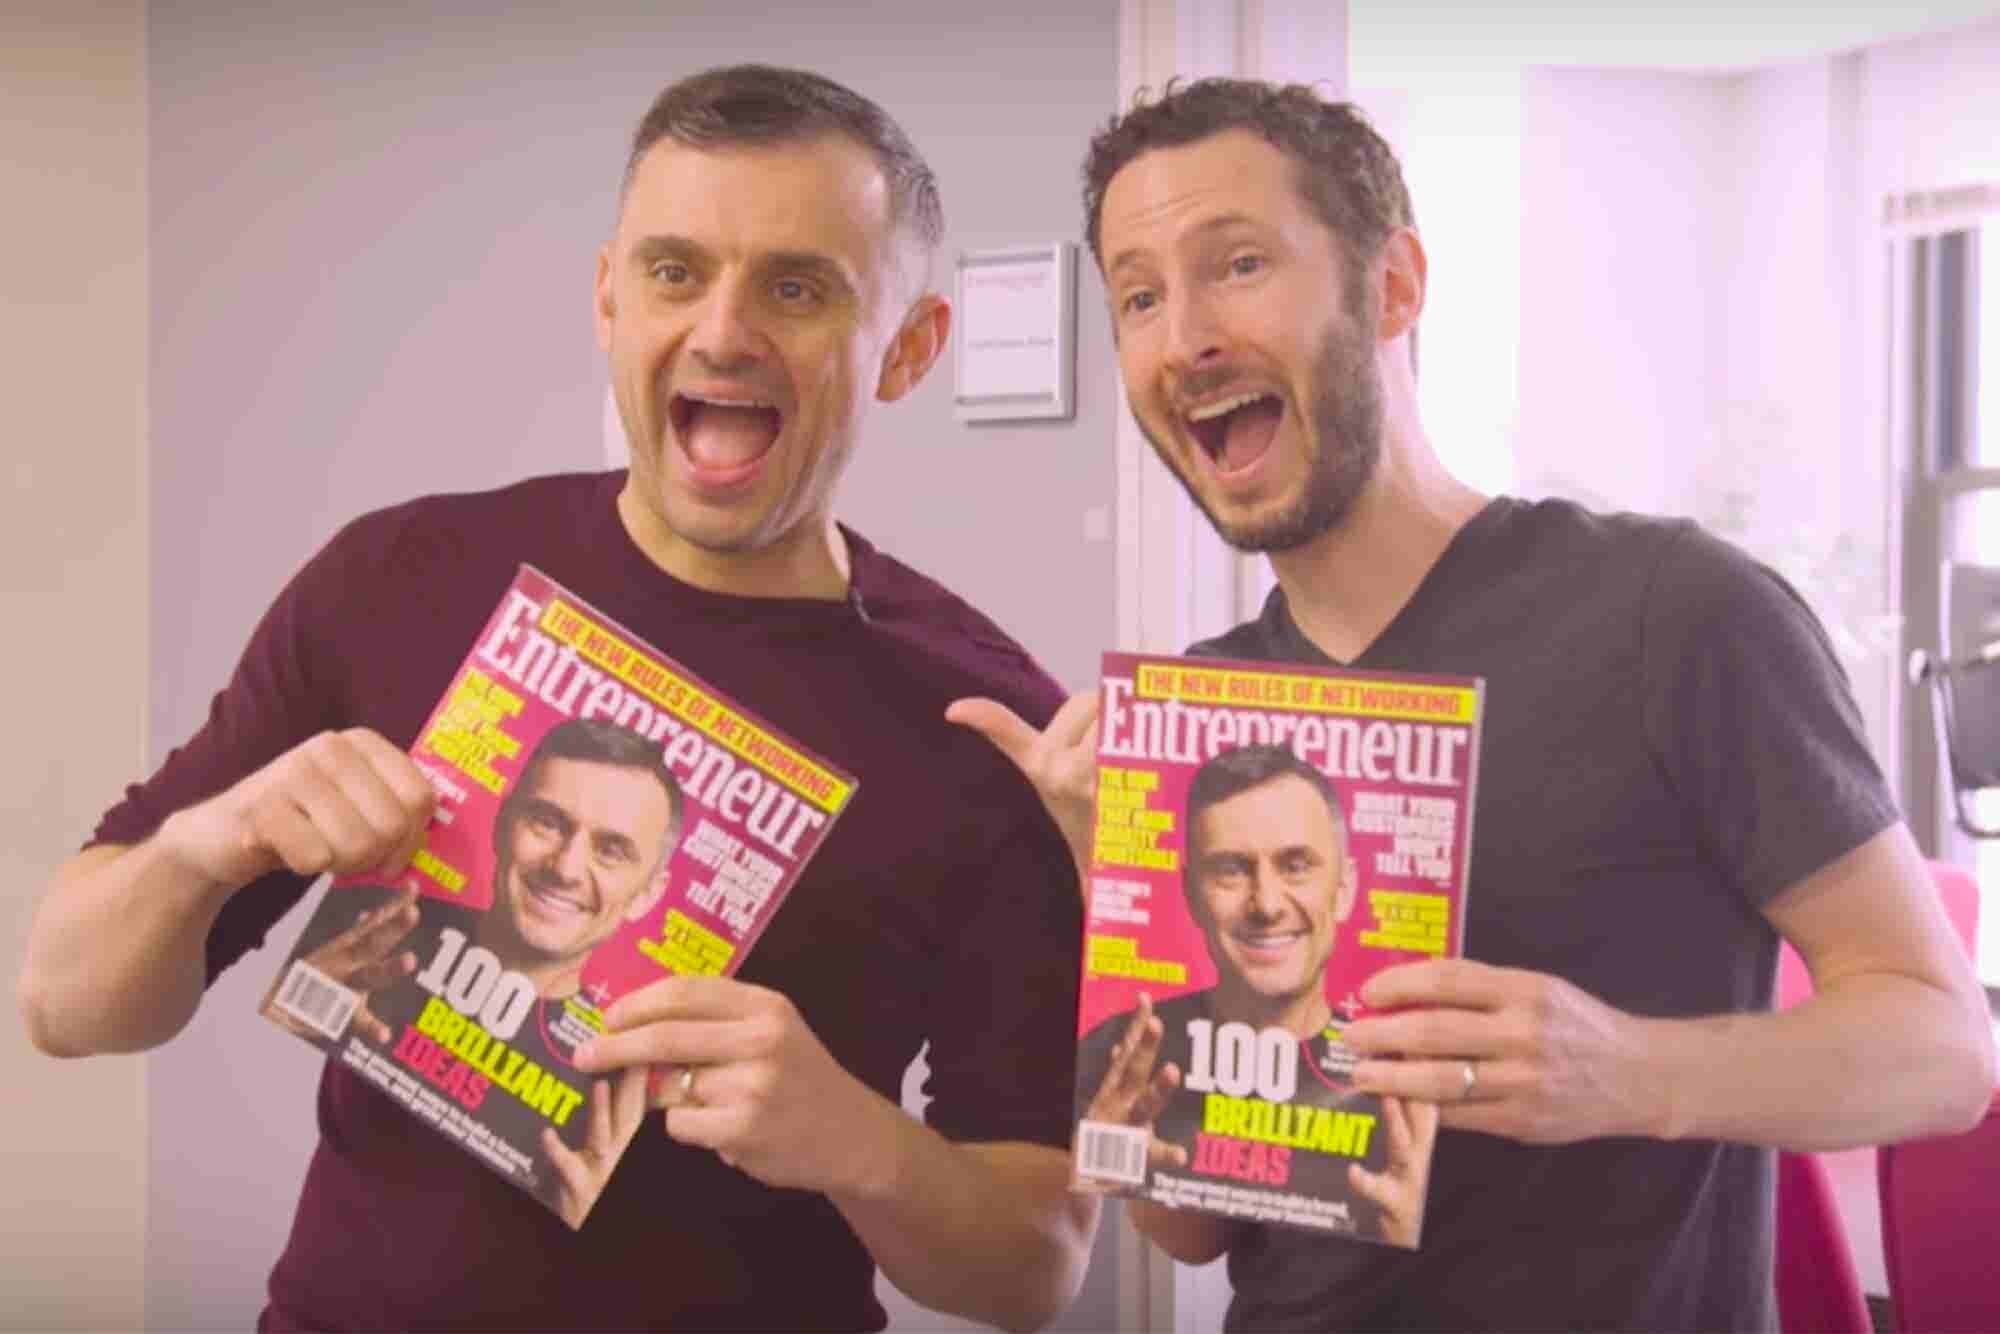 Watch Gary Vaynerchuk Drop In -- and Drop Knowledge -- at Entrepreneur